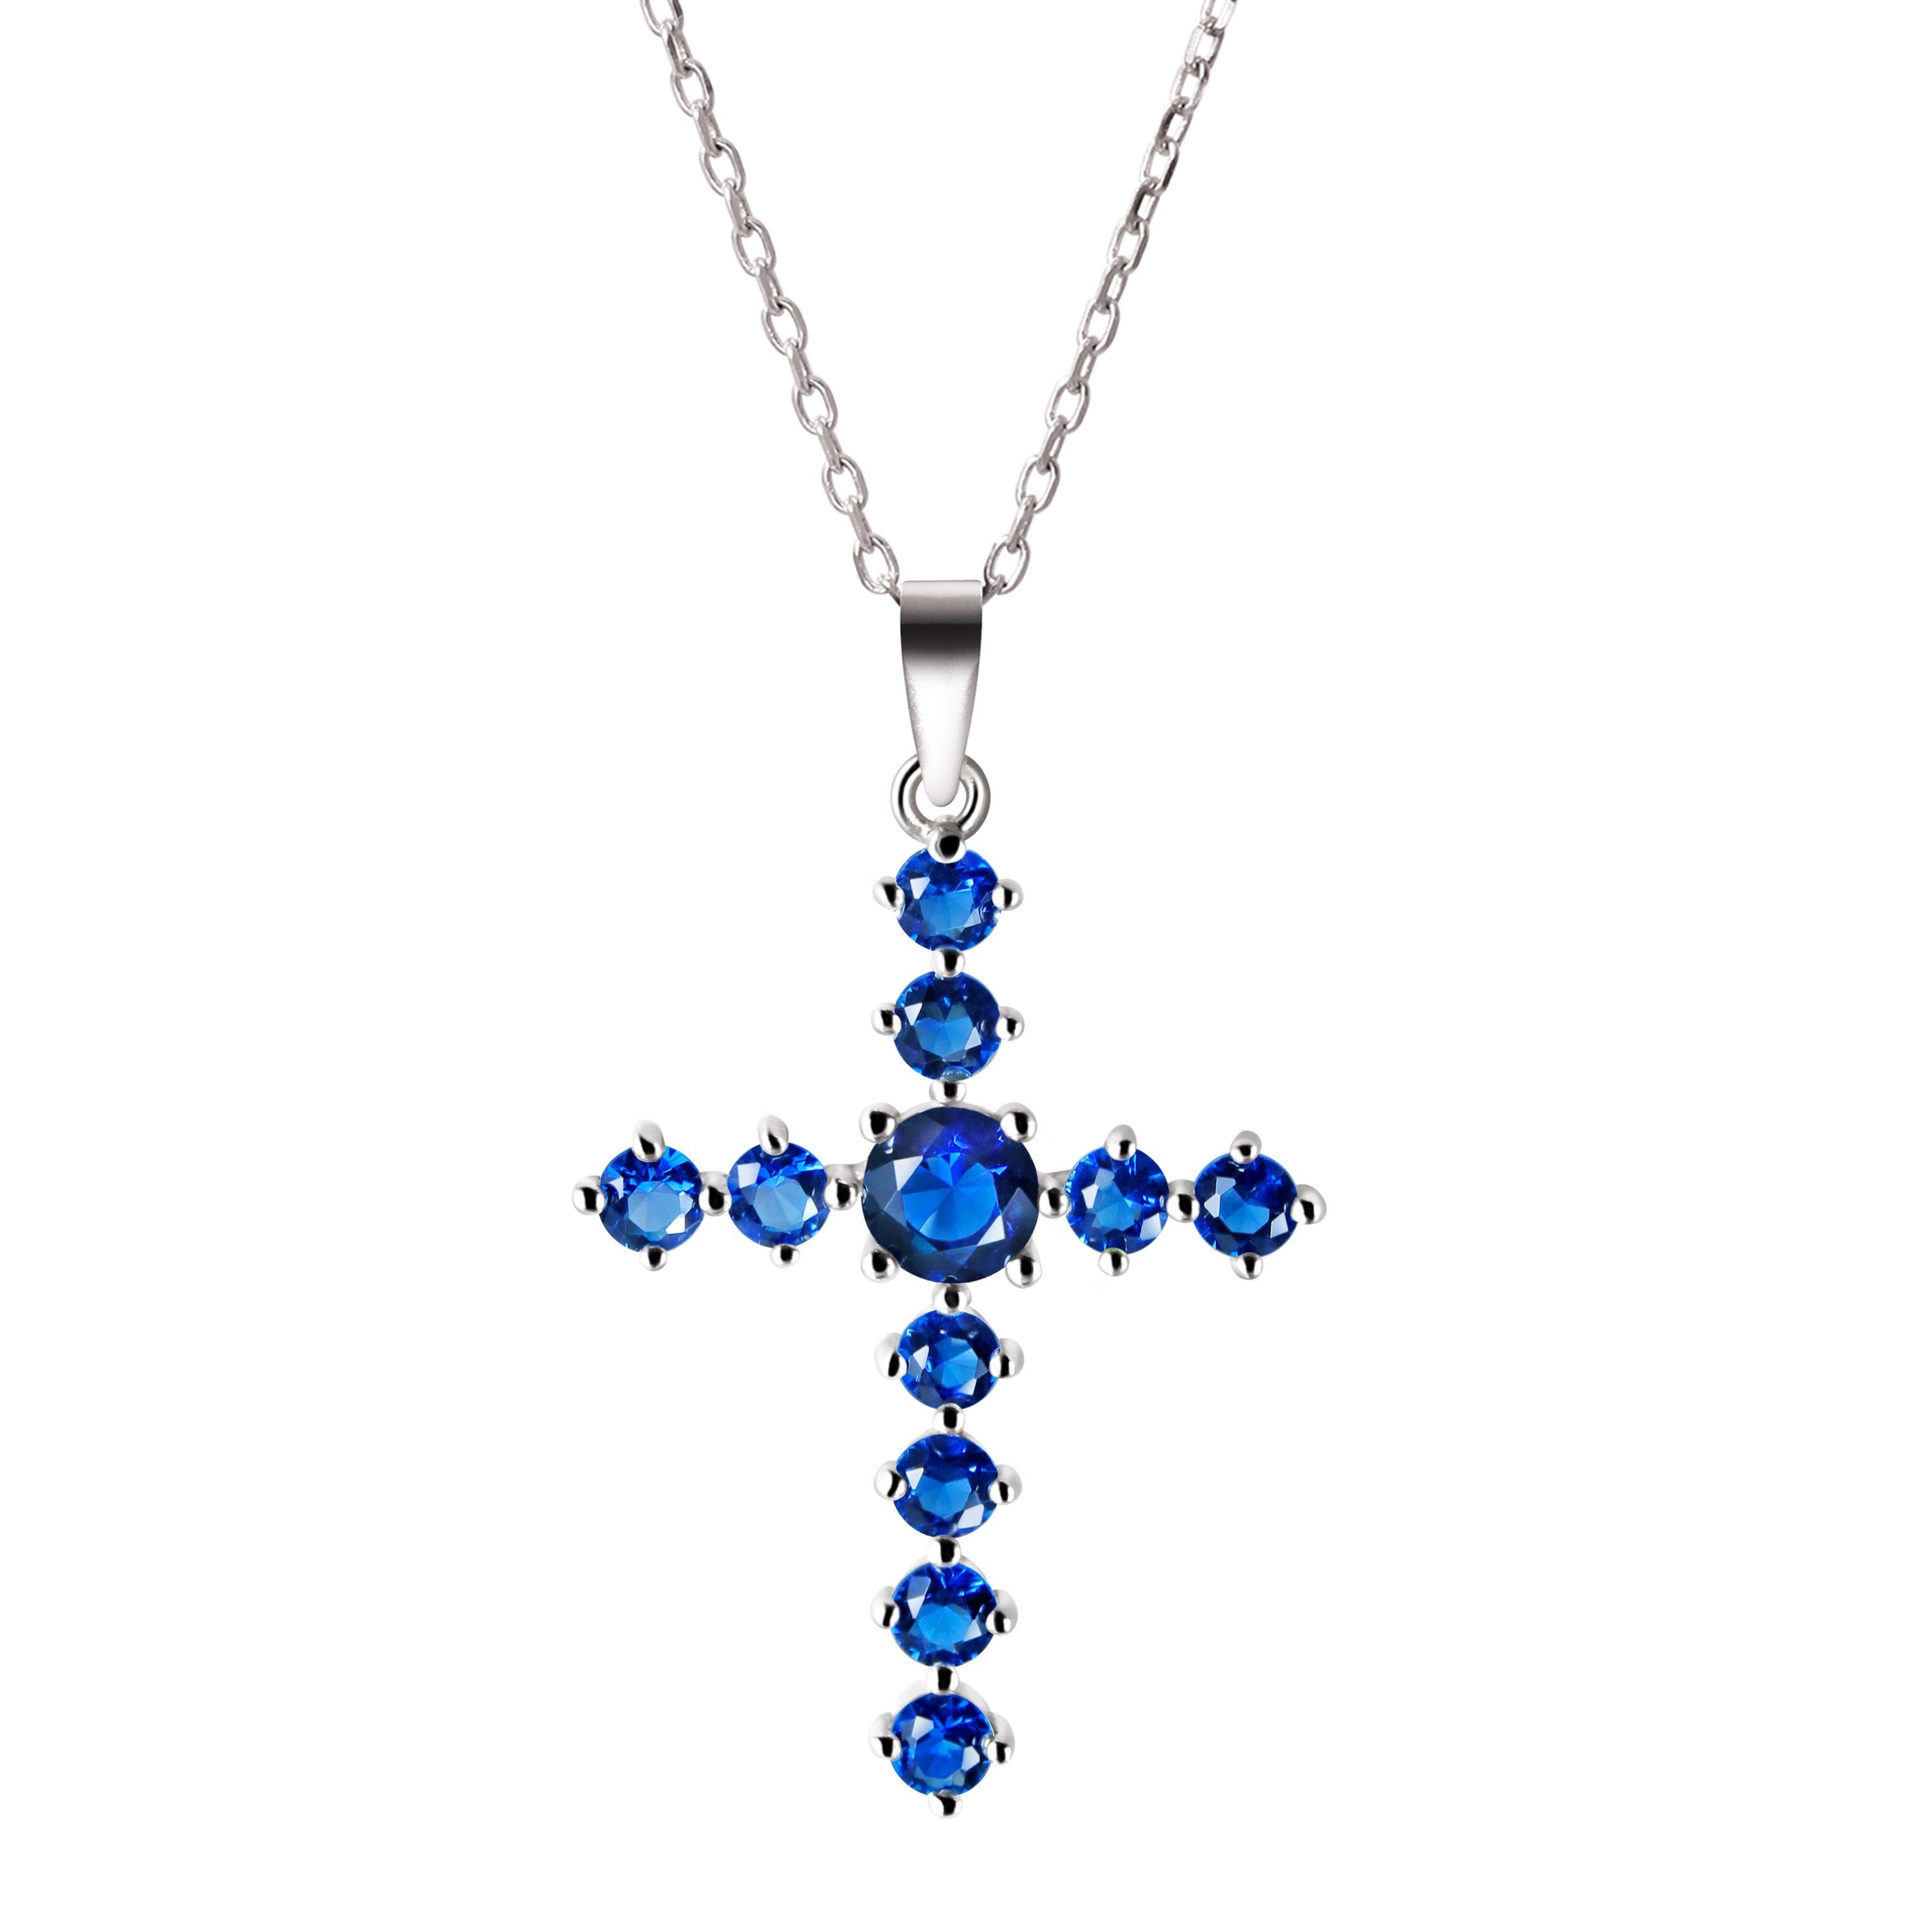 Dainty delicate sapphire coloured crystal gemstone sterling dainty delicate sapphire coloured crystal gemstone sterling silver cross pendant necklace aloadofball Image collections